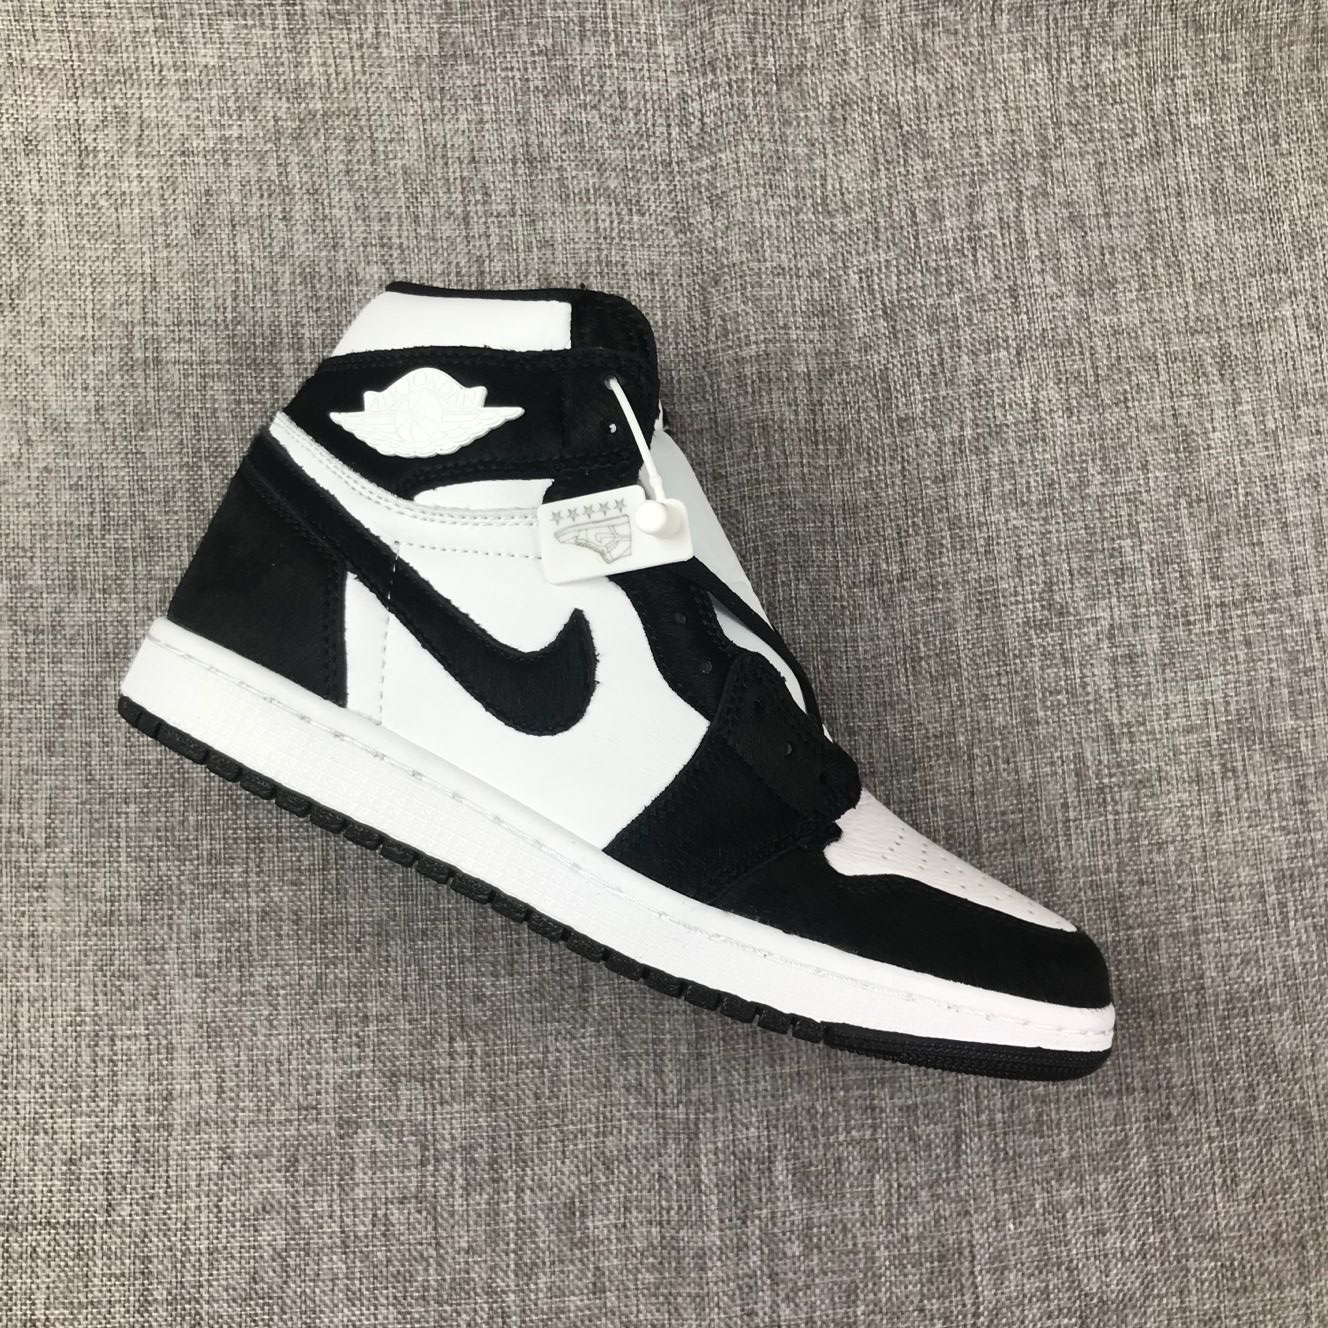 Men's Running weapon Air Jordan 1 Shoes 045